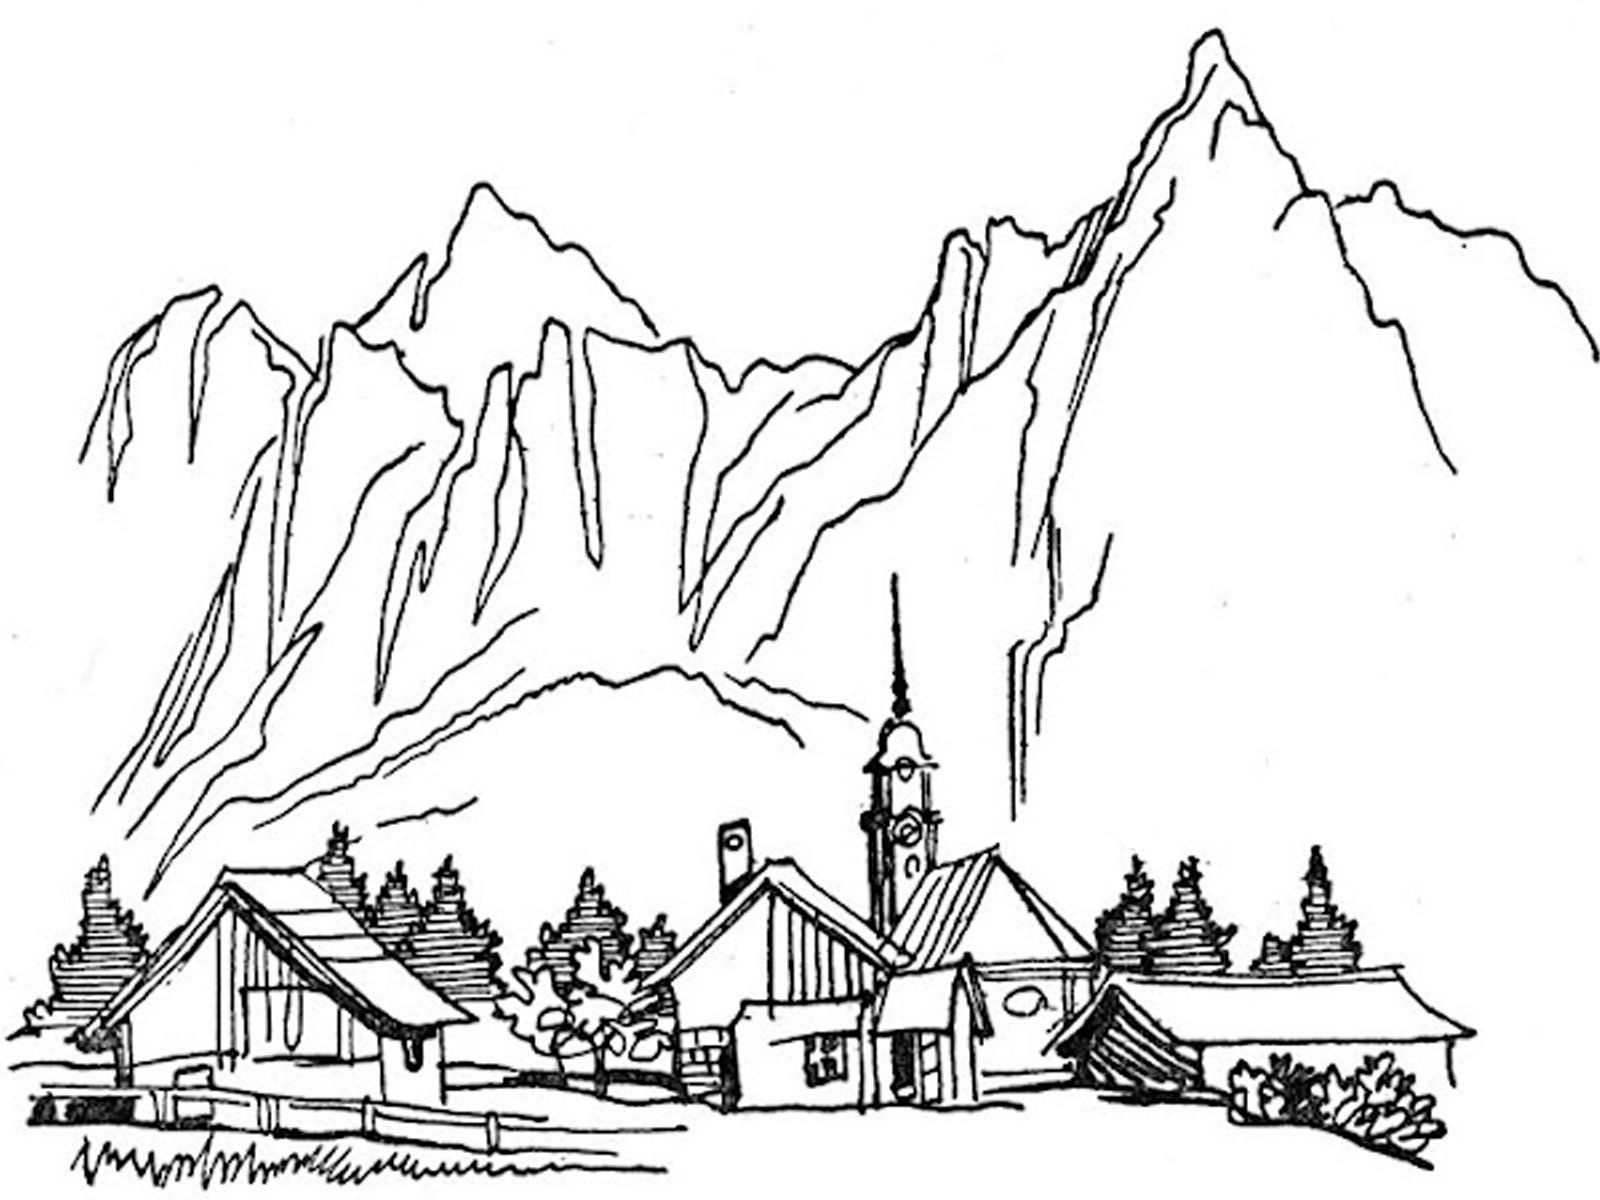 lake scene coloring pages - photo#21